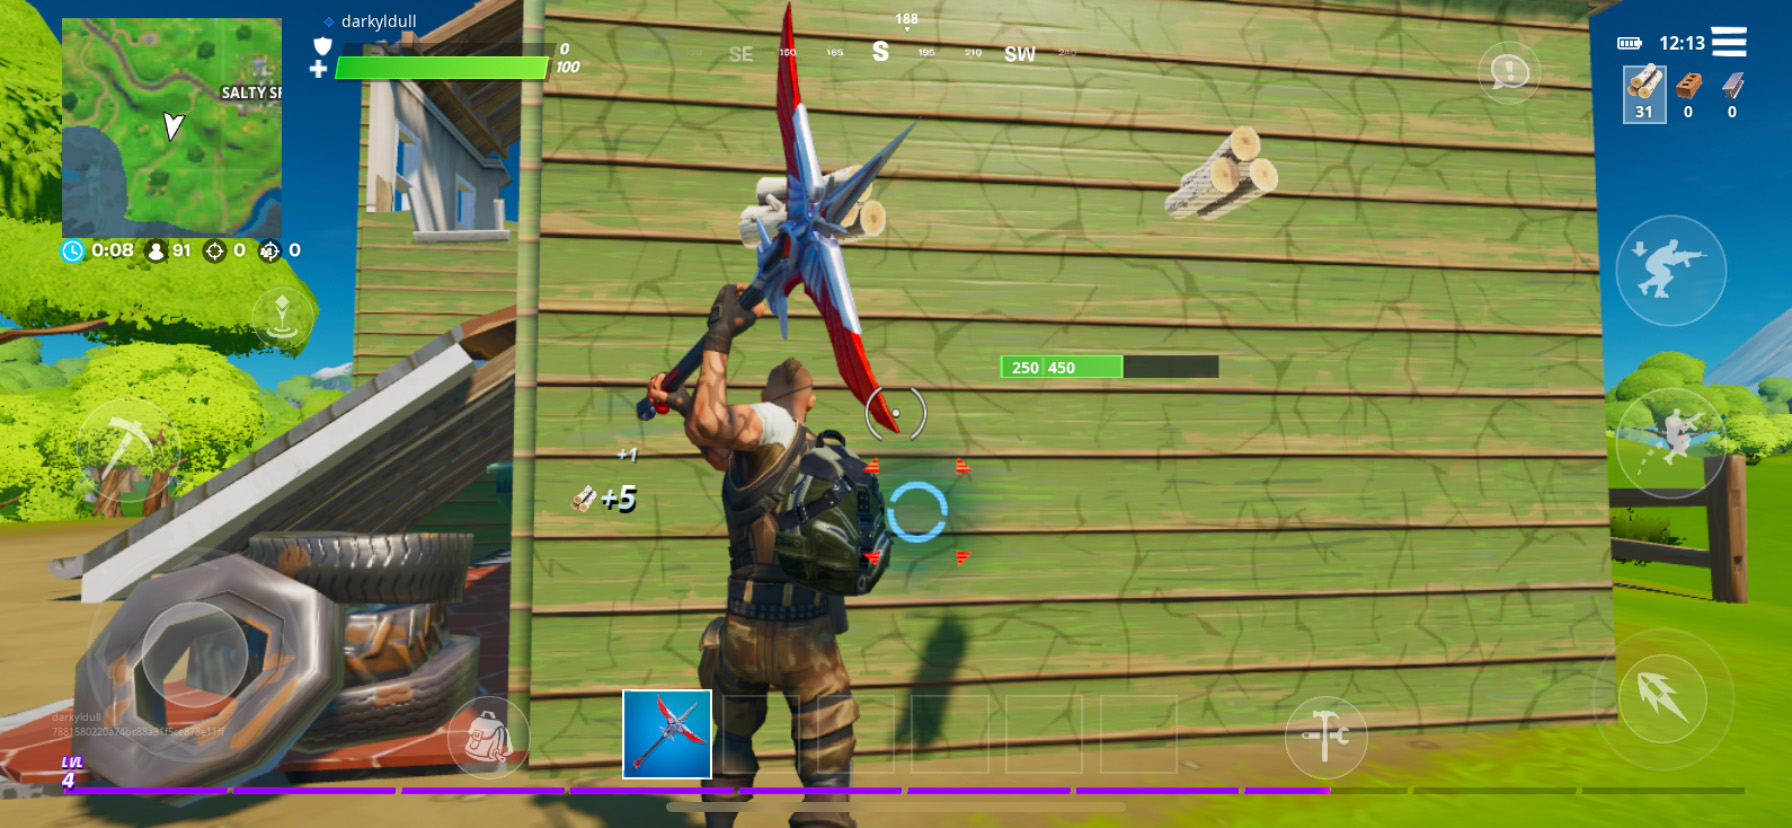 Fortnite Mobile for Android - How to Build Powerful and Effective Structures